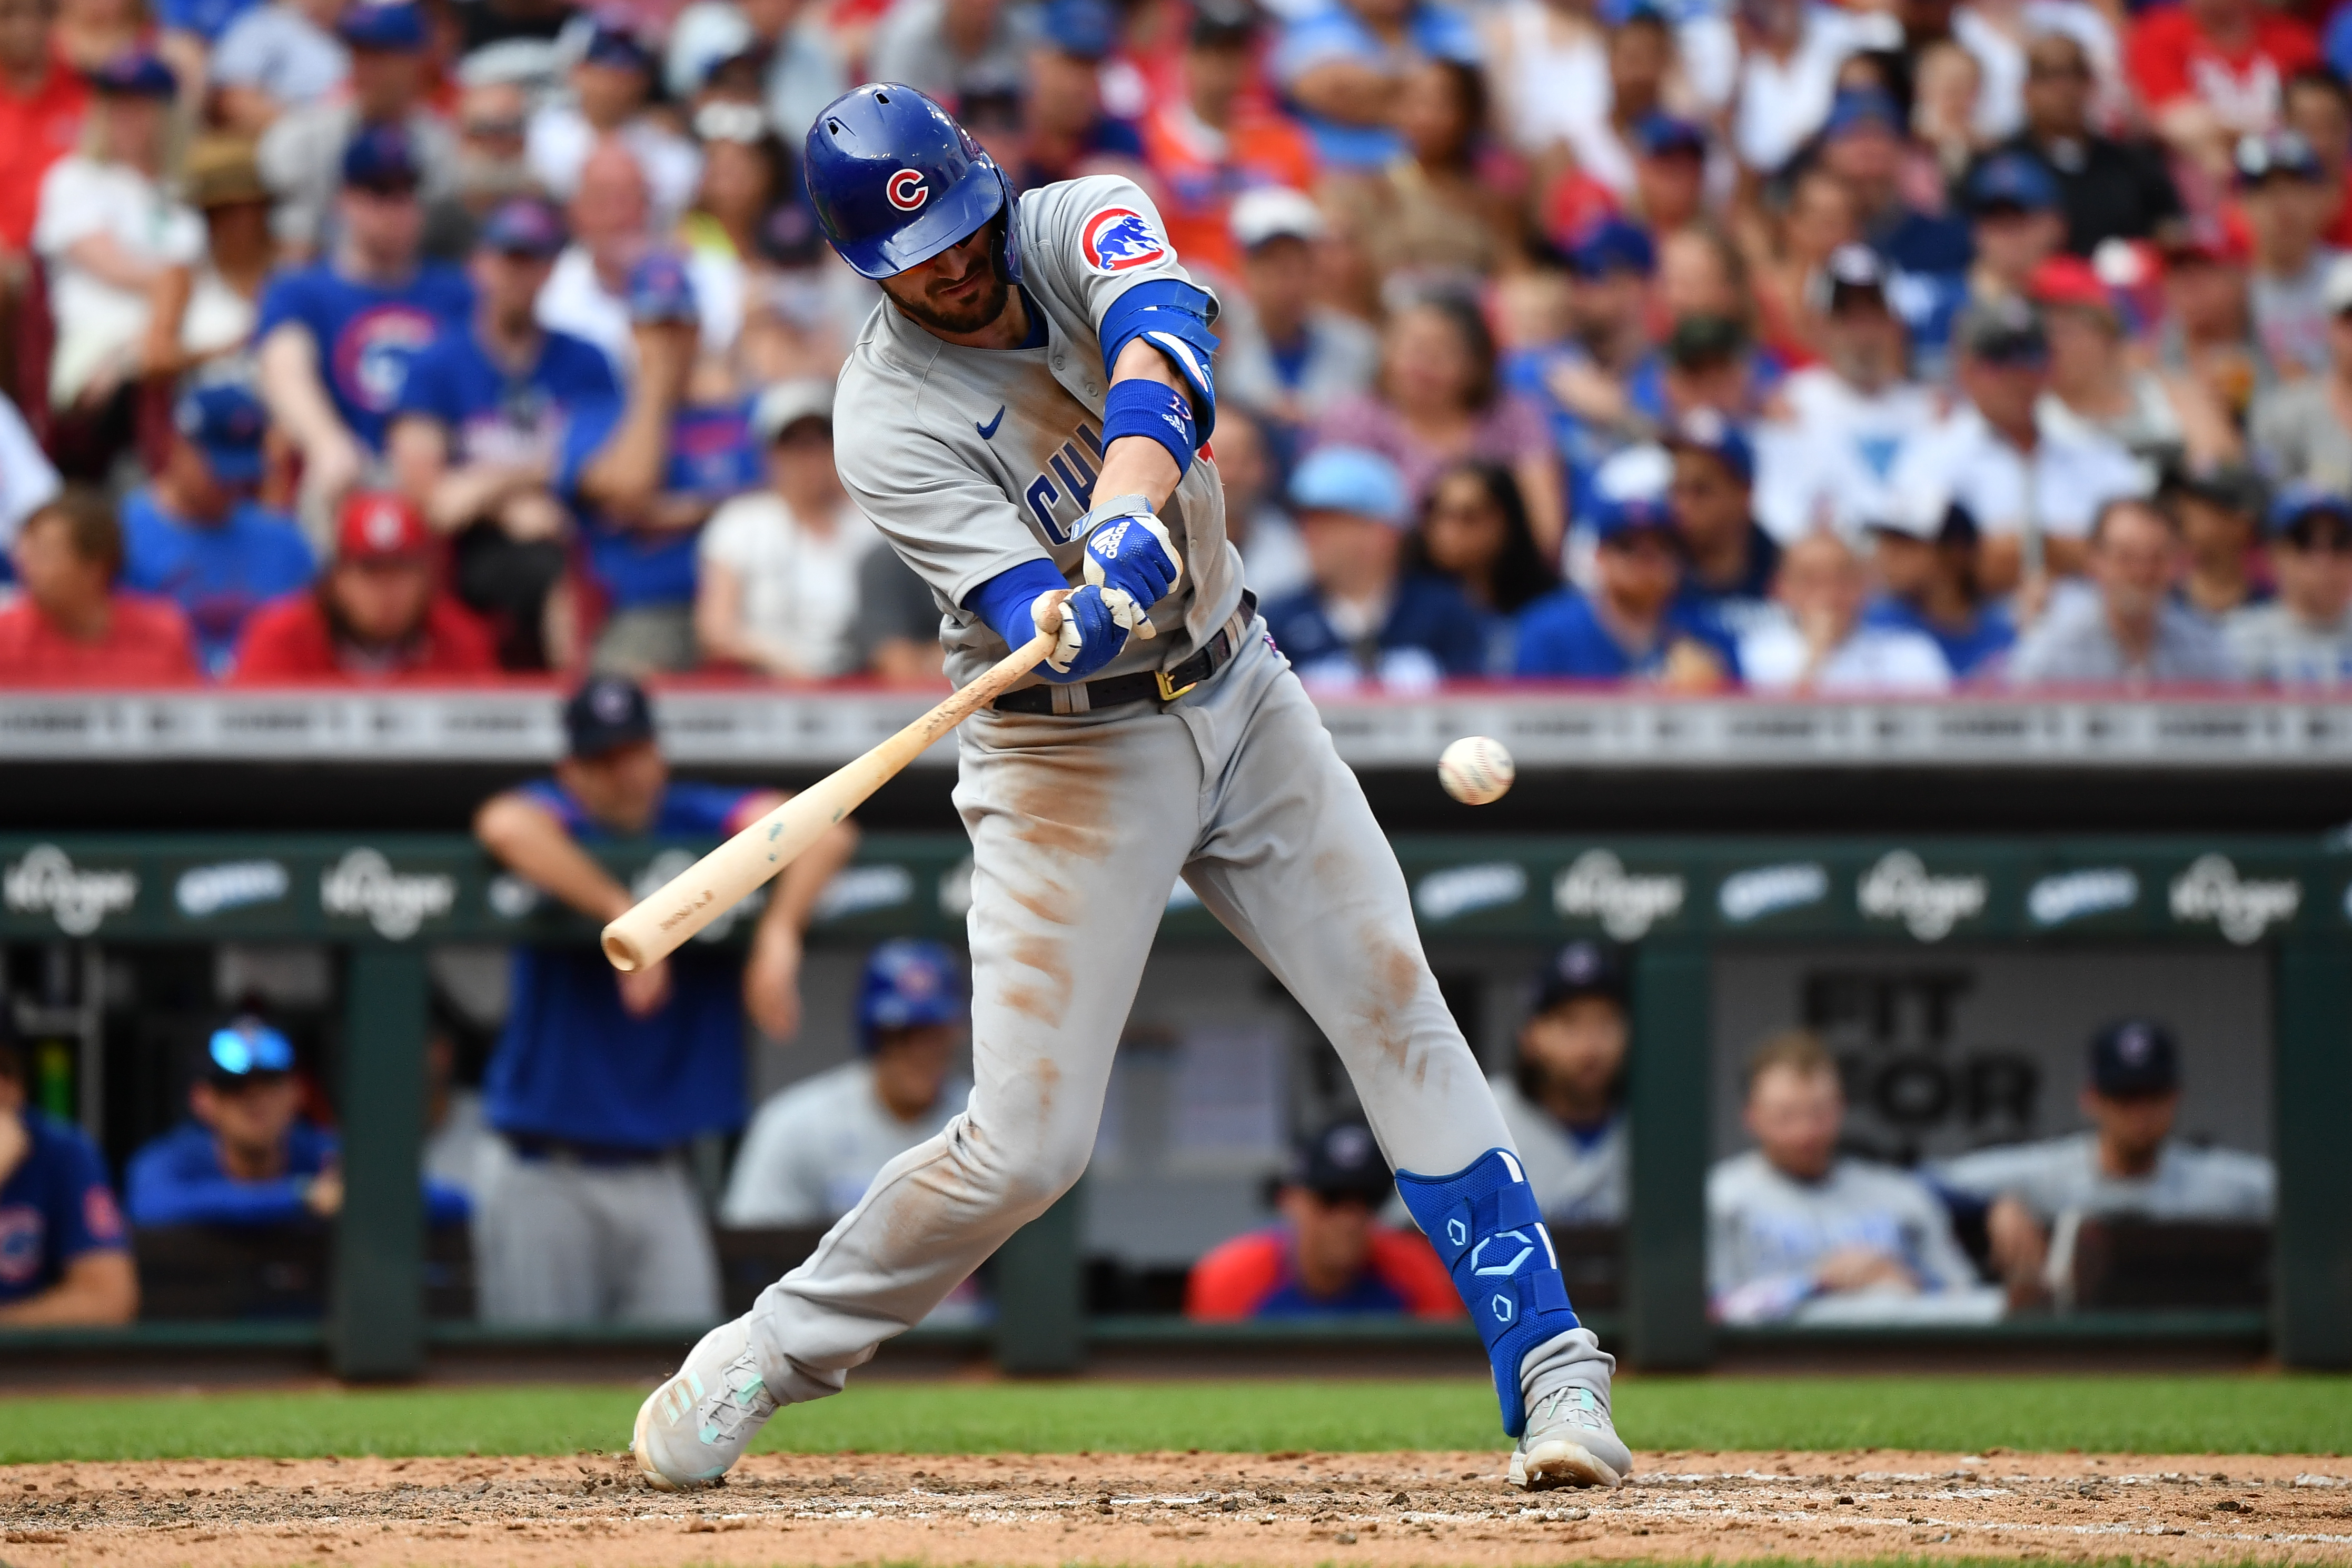 Manager David Ross said Kris Bryant will be in the starting lineup for Friday's game against the Diamondbacks.